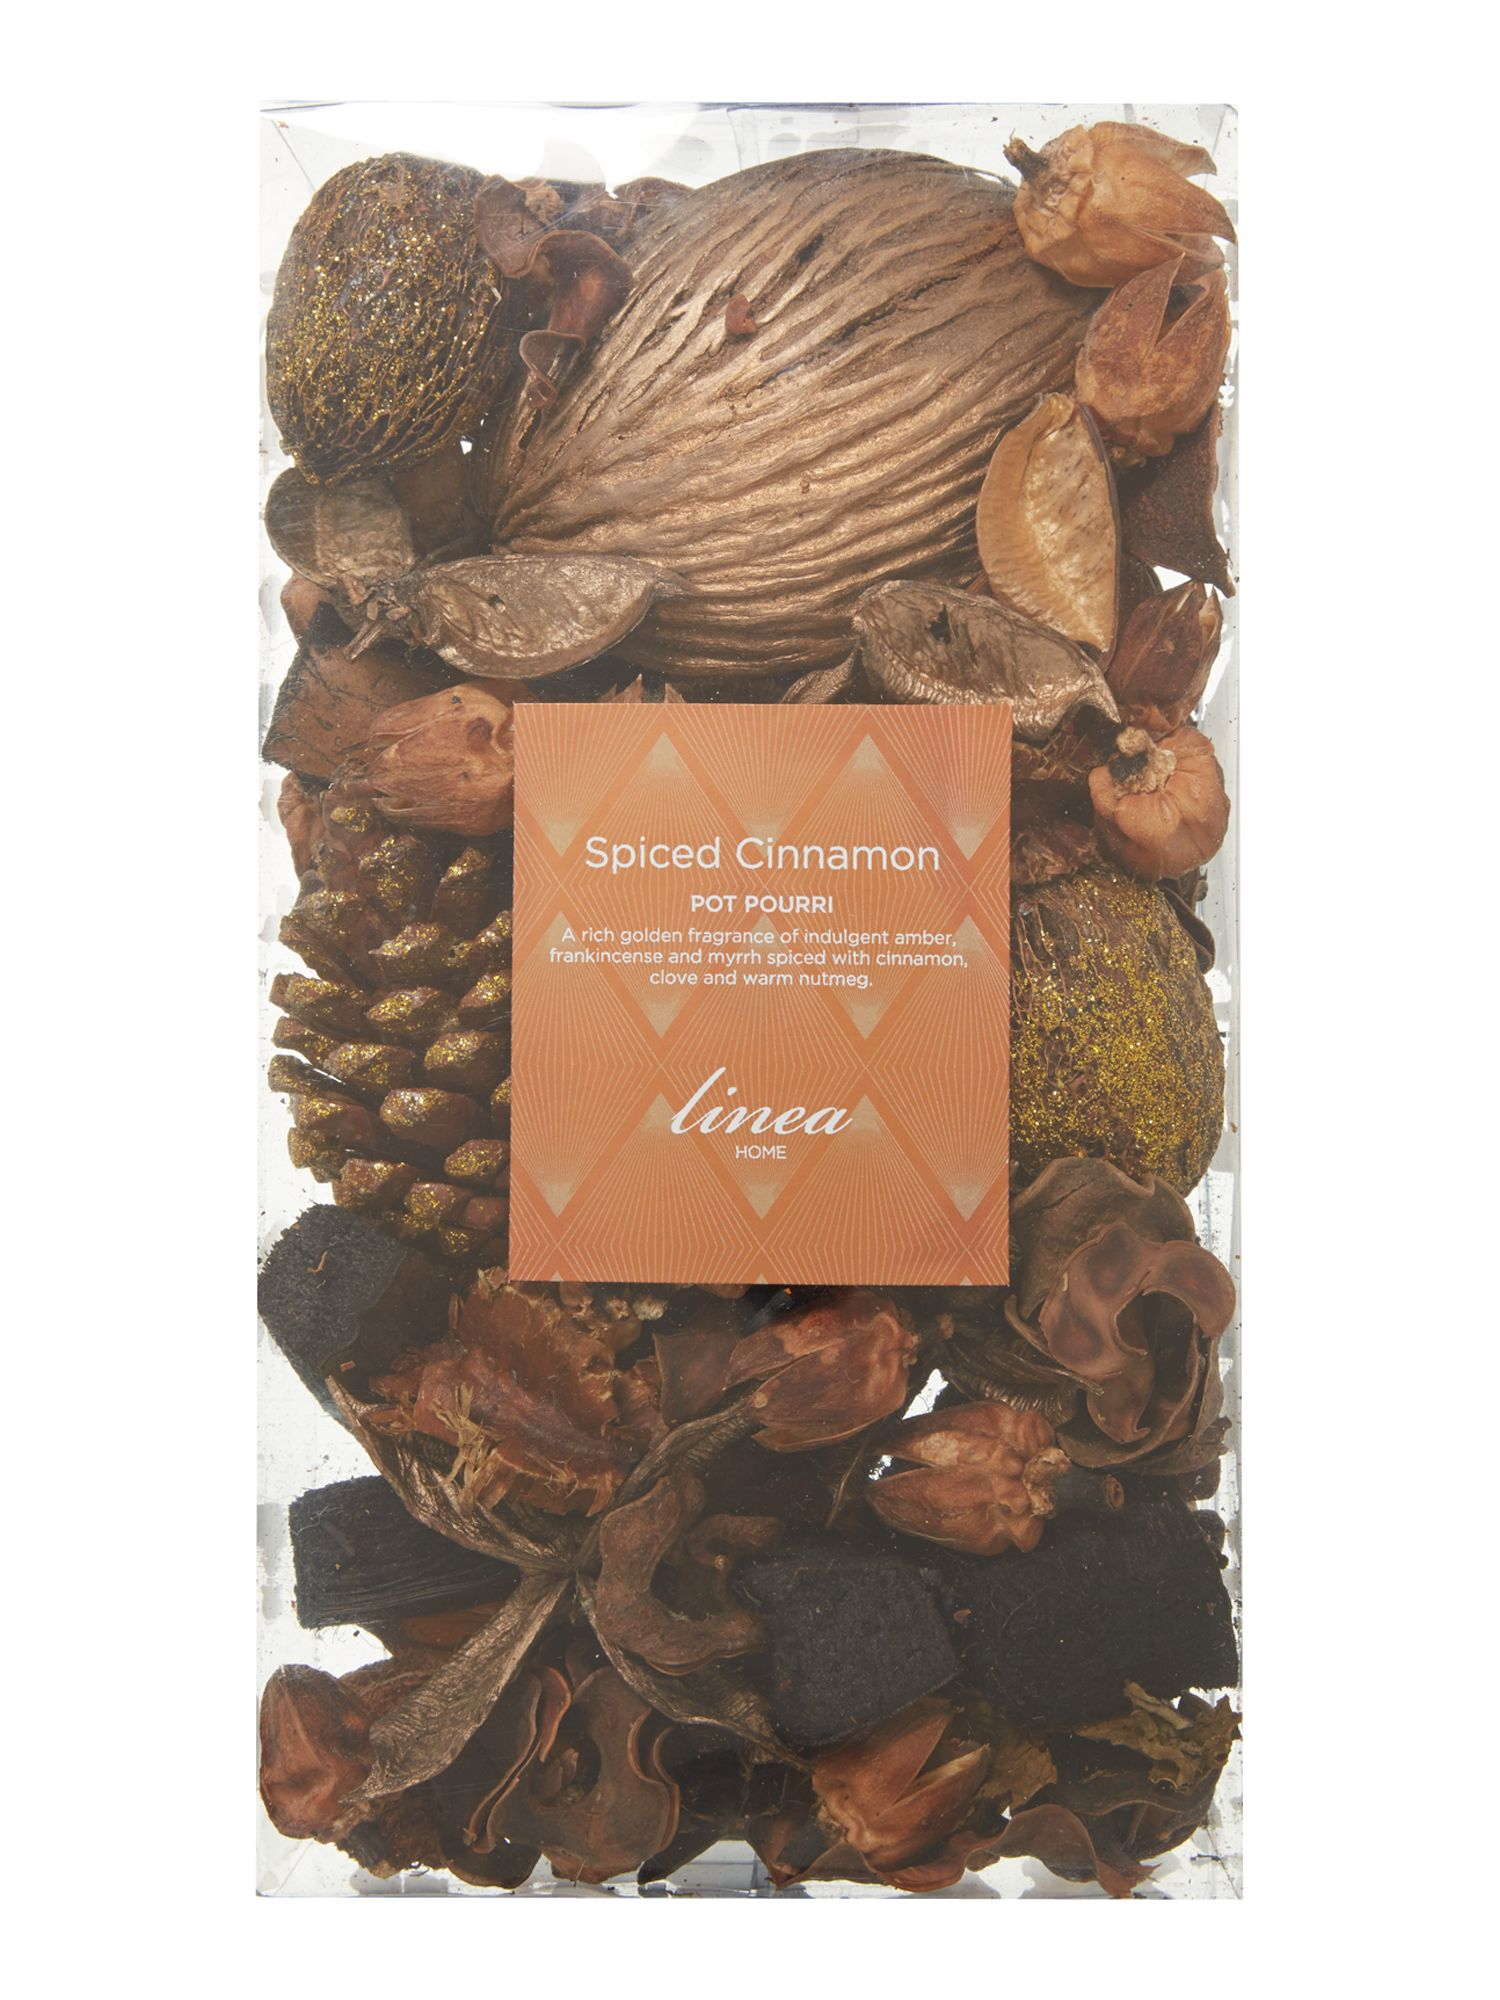 Spiced cinnamon pot pourri